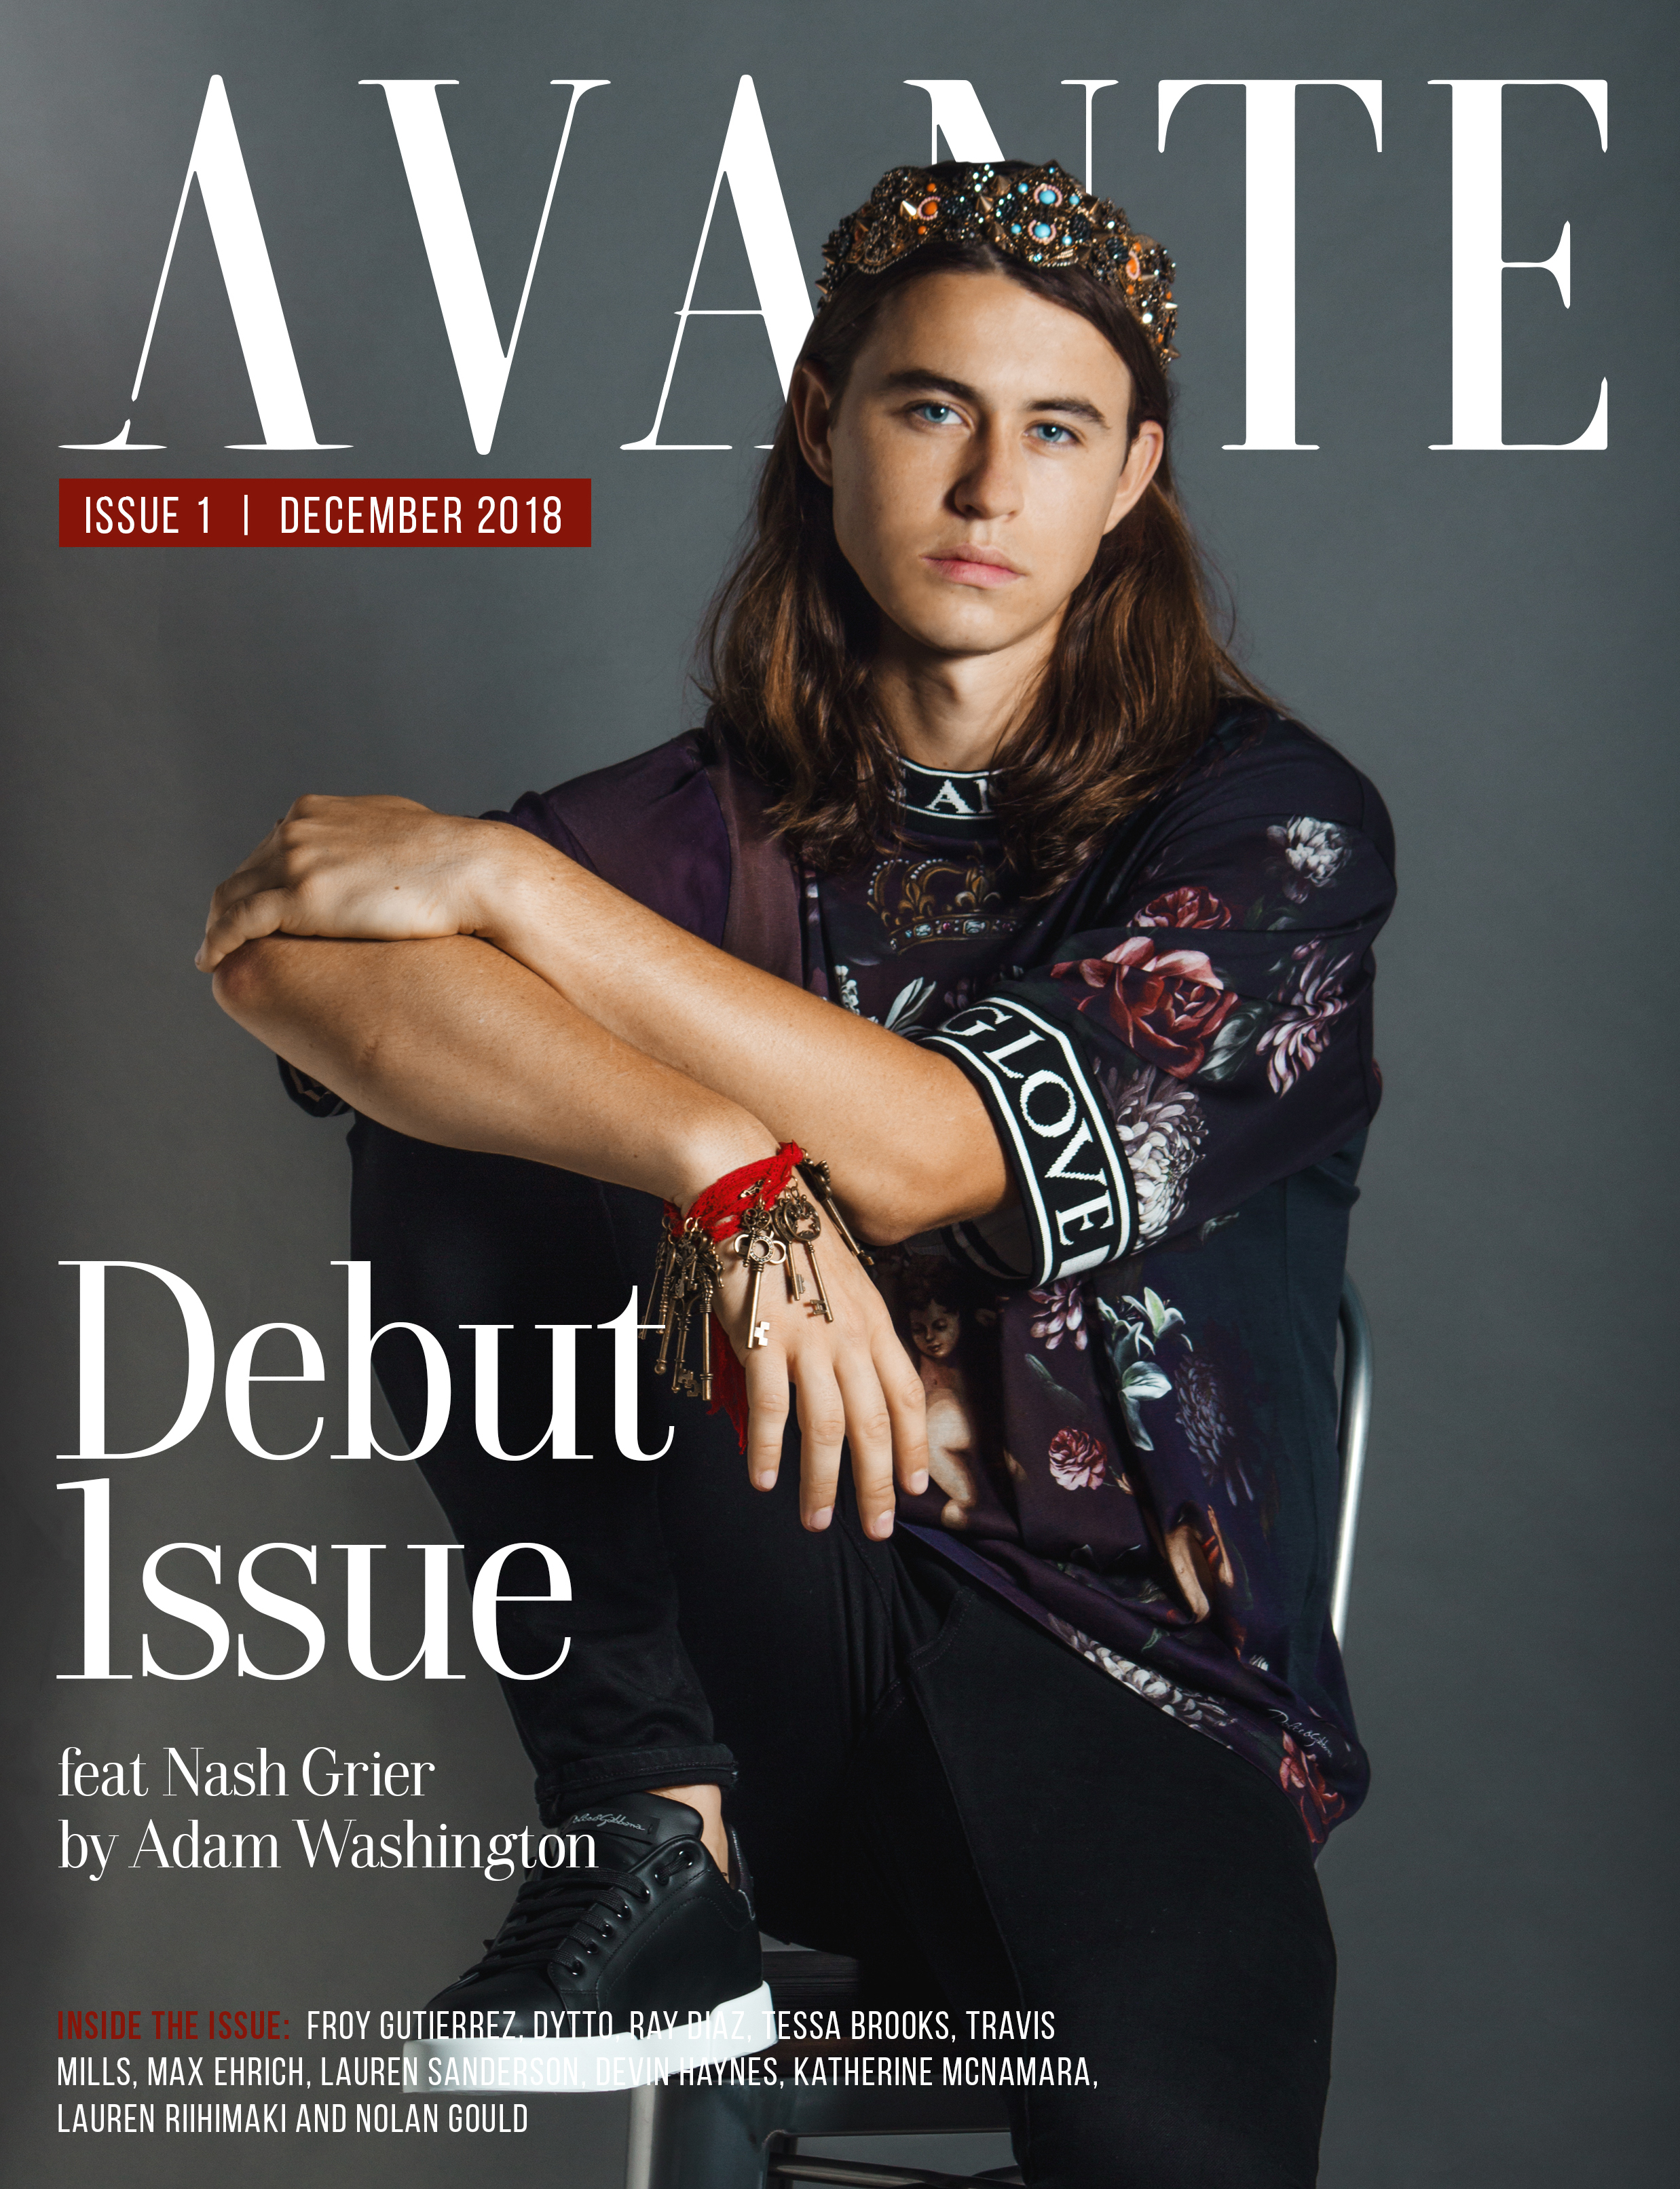 Debut Issue: Nash Grier Cover